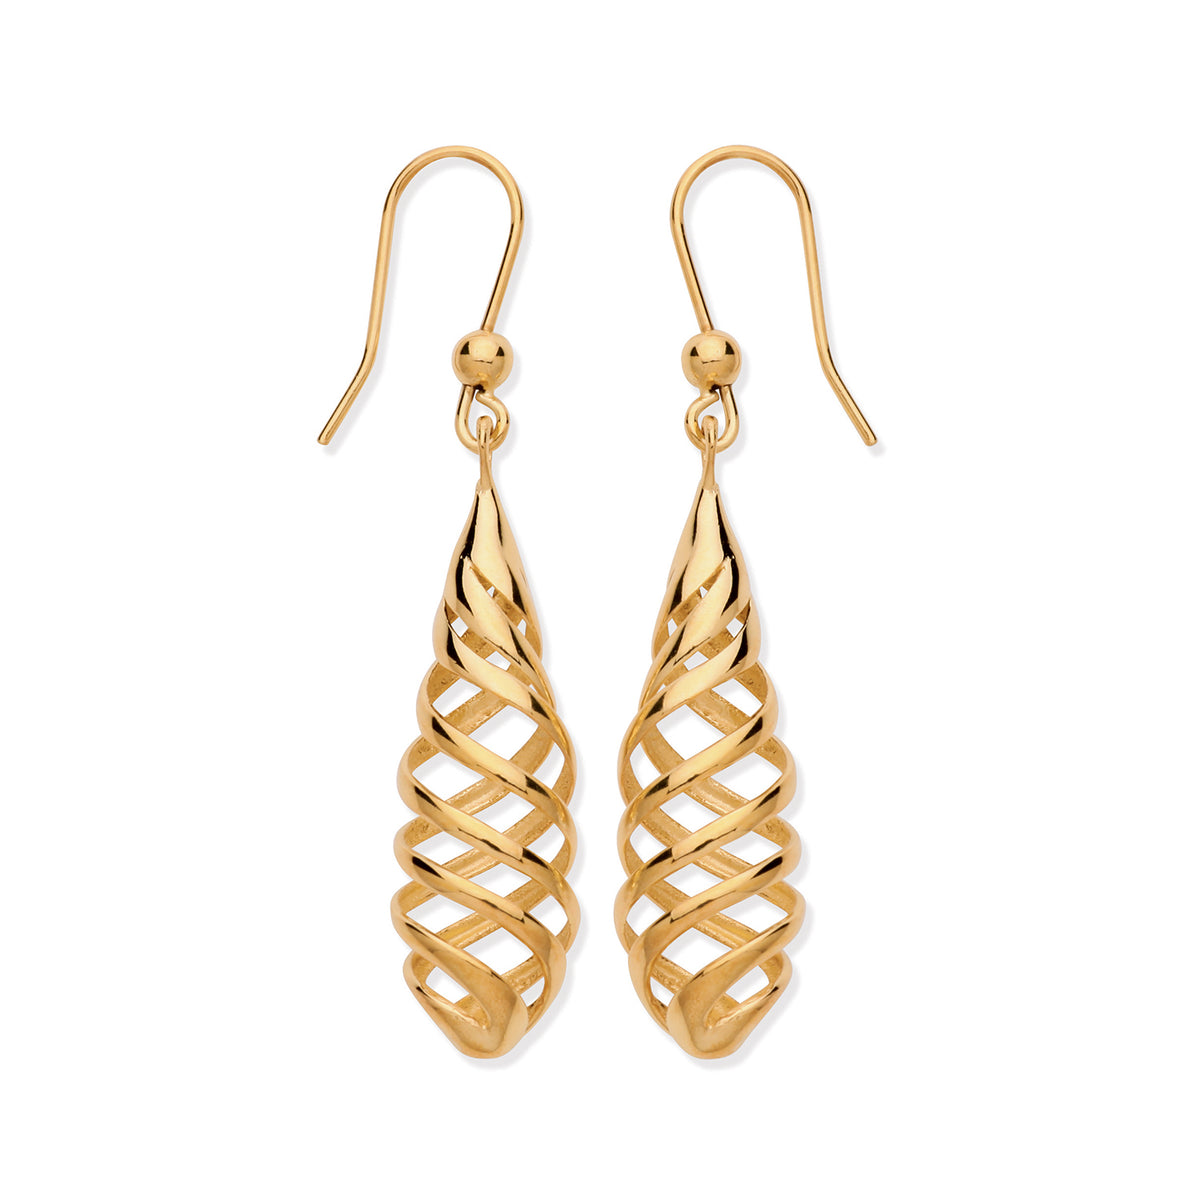 9ct Yellow Gold Fish Hook Drop Earrings